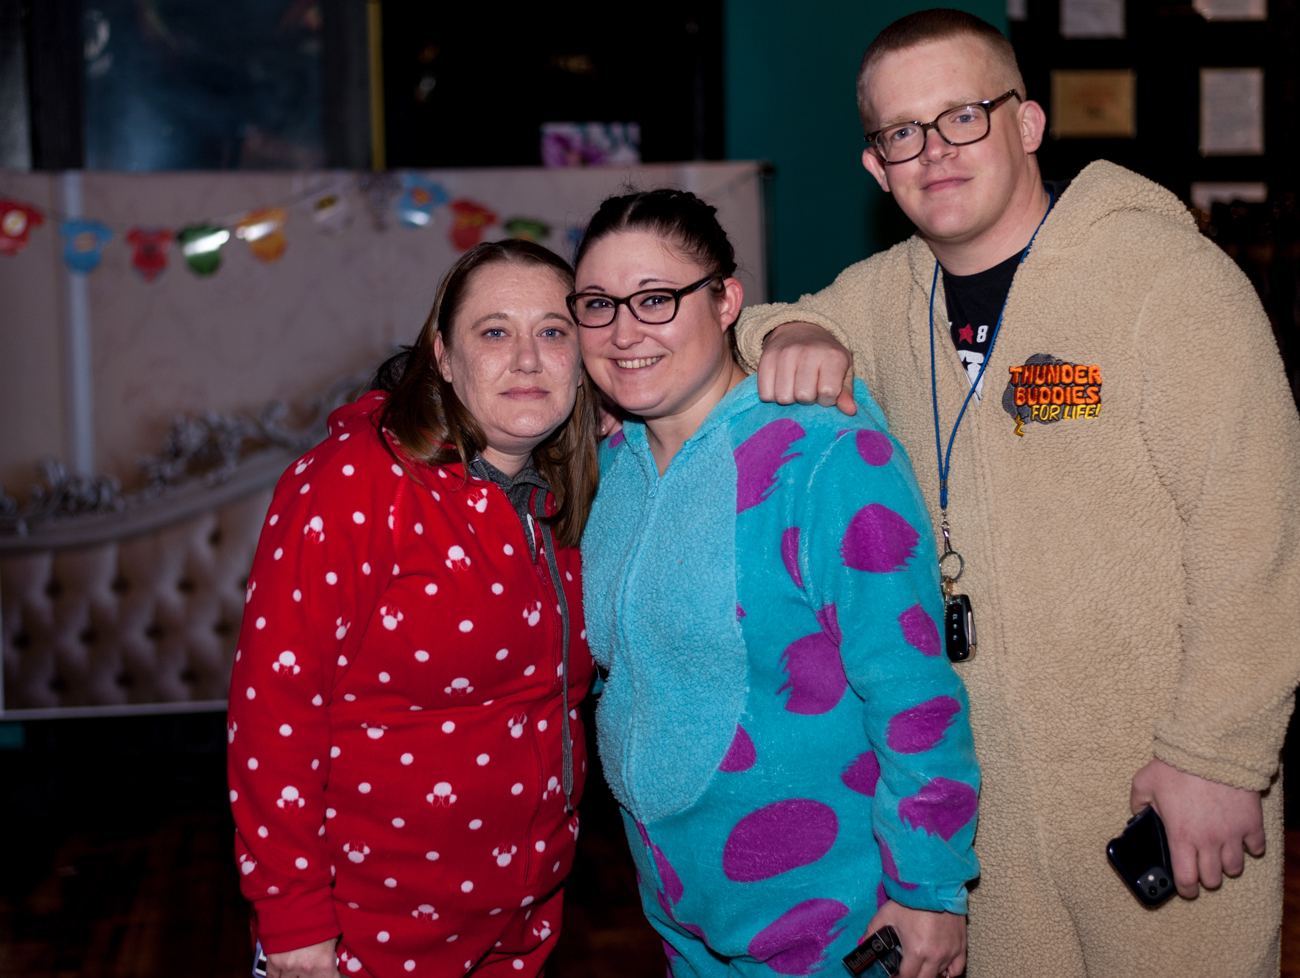 The Onesie Bar Crawl, hosted by Crawl With Us, was held on Saturday, January 18. The crawl took onesie-wearers through Downtown and Over-the-Rhine. Stops included Below Zero Lounge, Fiery Hen, Holiday Spirits, Mr. Pitiful's OTR, and Queen City Exchange. An after-party was held at Fiery Hen later in the night. / Image: Kellie Coleman // Published: 1.19.20